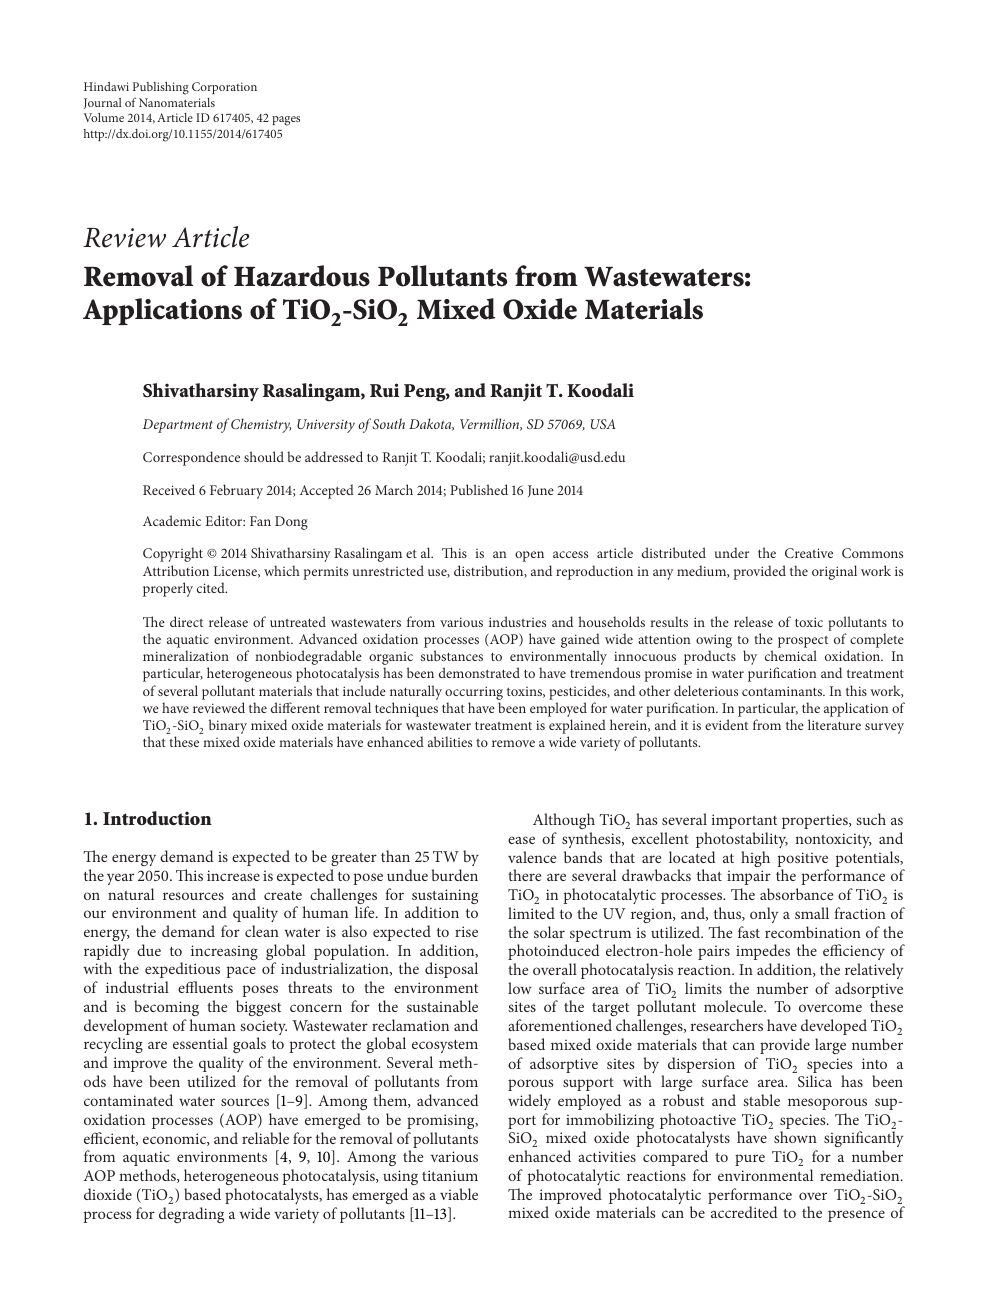 Removal of Hazardous Pollutants from Wastewaters: Applications of